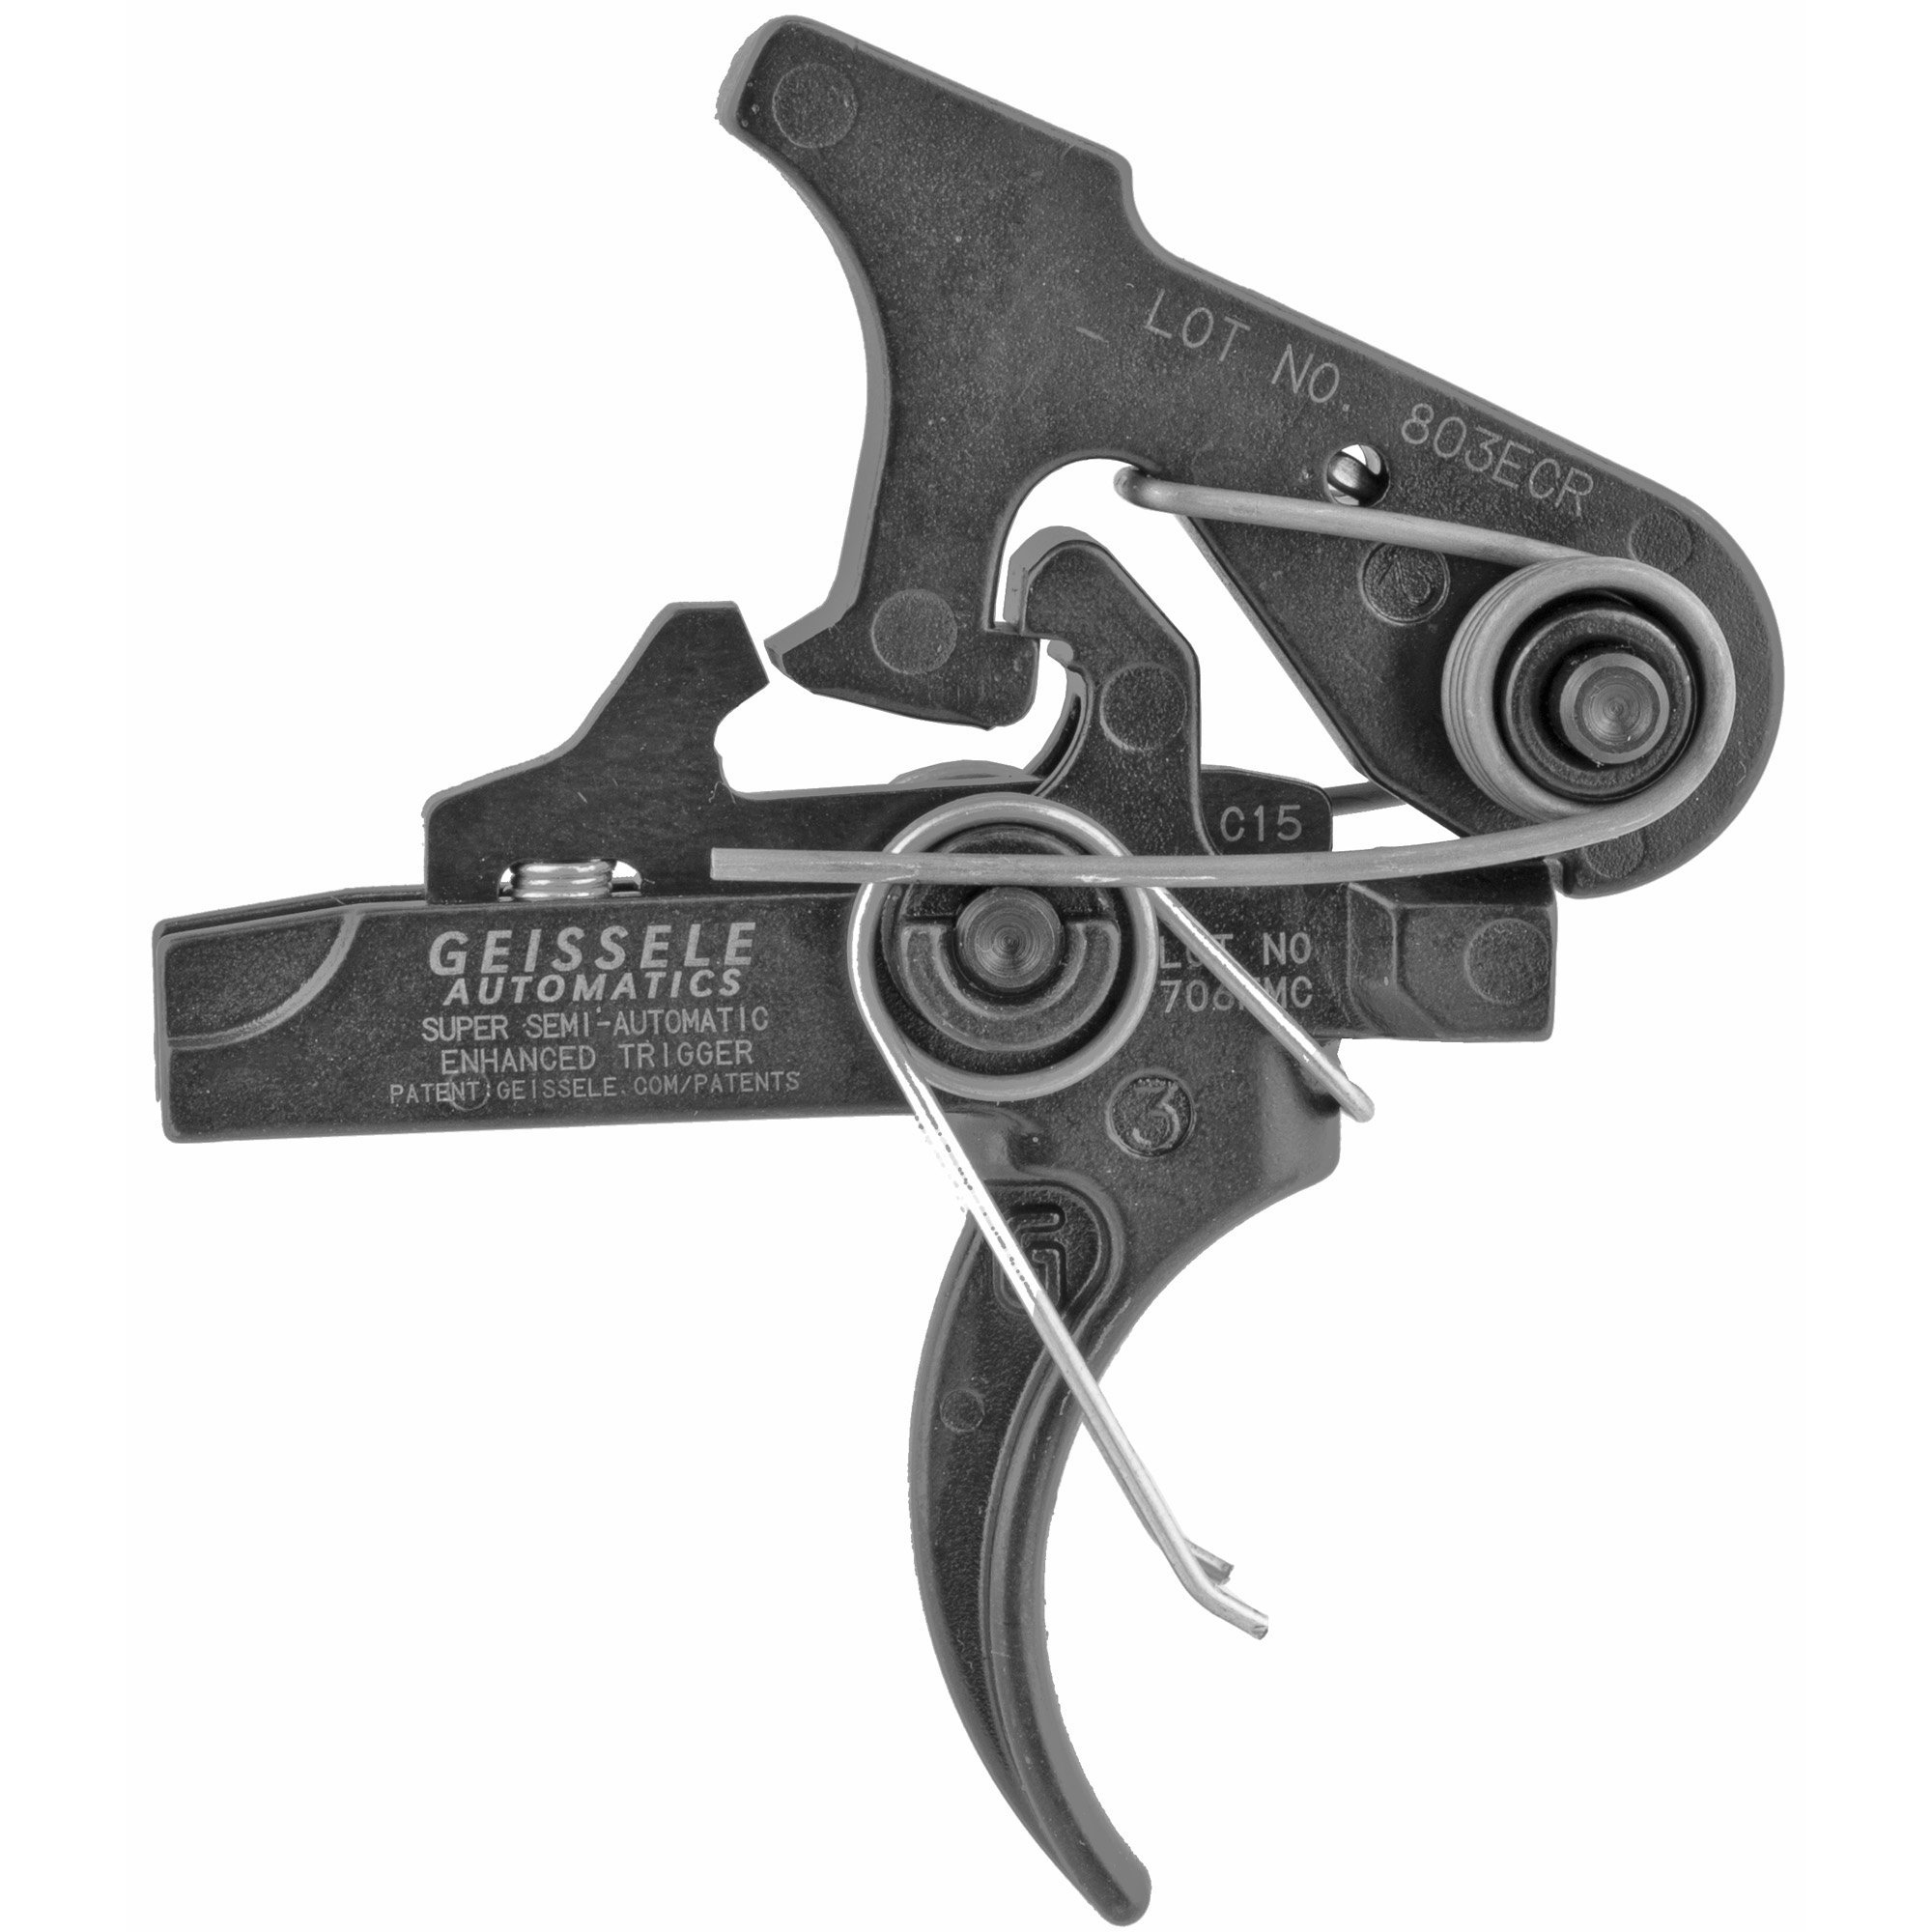 """Built on the chassis of the Geissele SSA"""" the Super Semi-Automatic Enhanced (SSA-E) provides enhanced trigger control and weapon accuracy while maintaining the robustness and reliability of our combat-proven two-stage trigger. The SSA-E's reduced first and second stage pull weights result in a trigger with a smooth"""" light first stage take-up and a crisp"""" candy cane-like second stage break. The SSA-E is ideal for use in precision Squad Designated Marksman type rifles where weapon accuracy and reliability are critical and a non-adjustable drop in trigger is desired."""